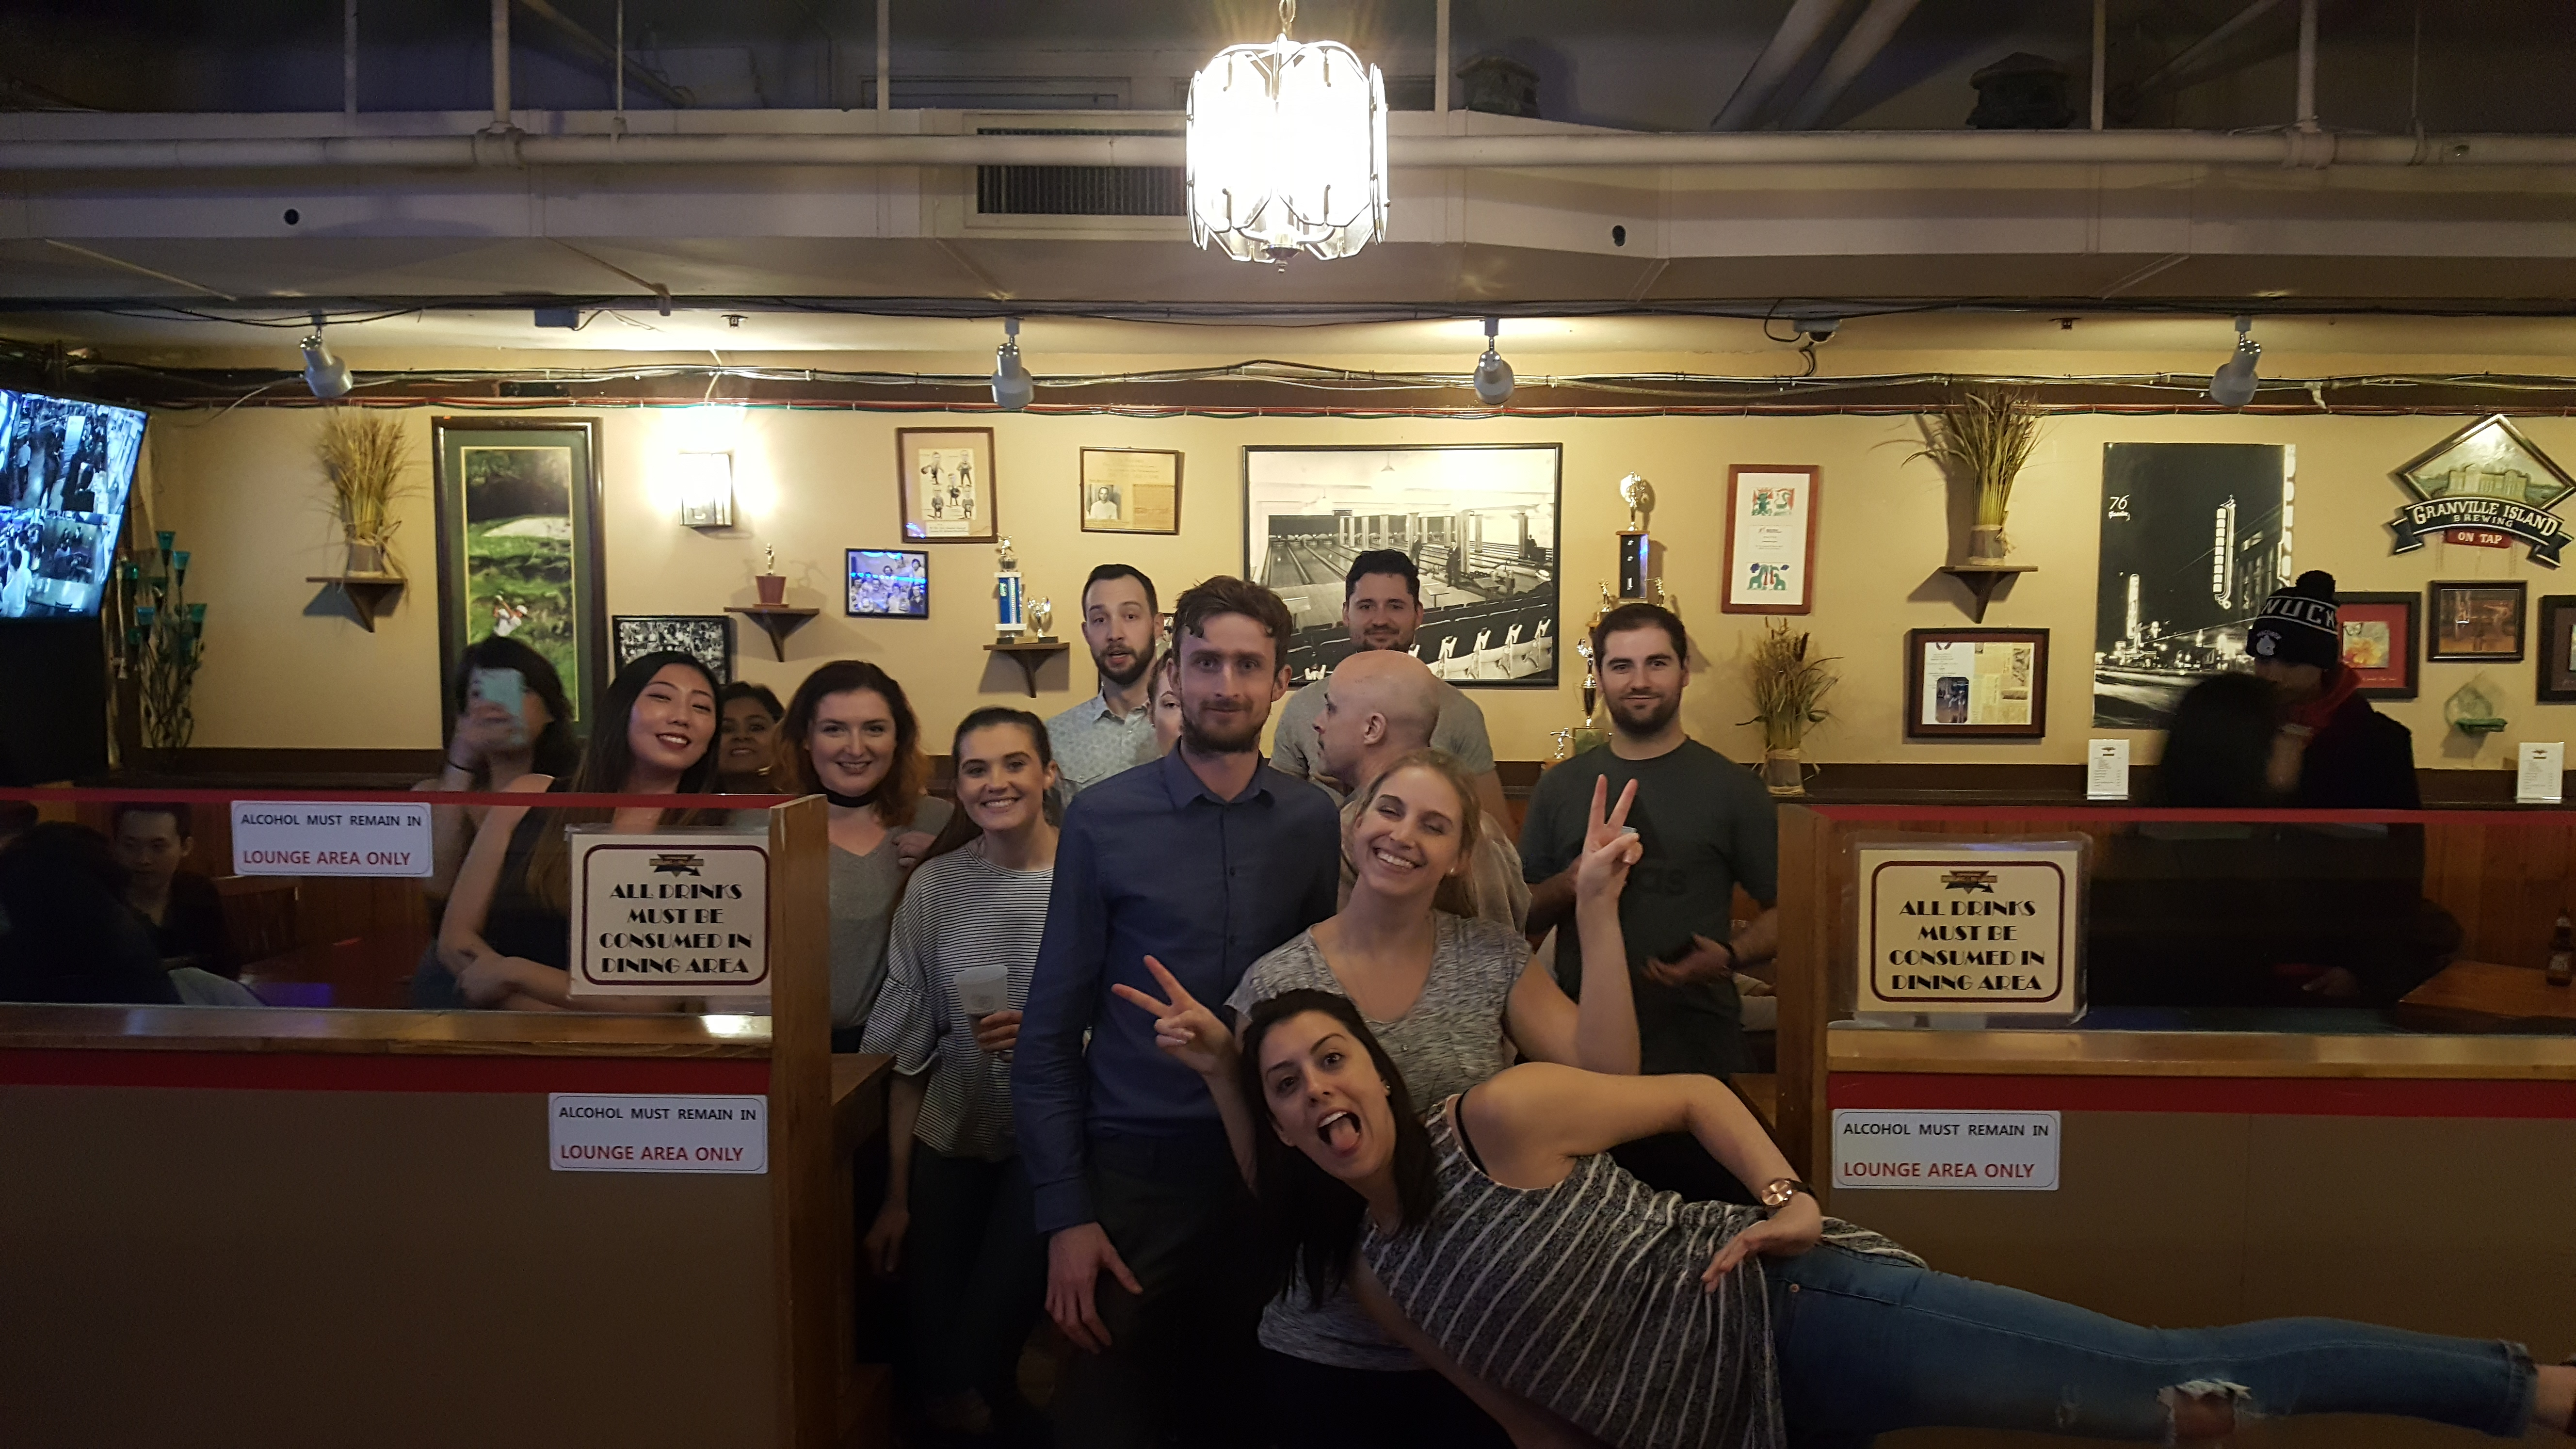 20170217 183356 - Impact night out: pizza, bowling and beer!